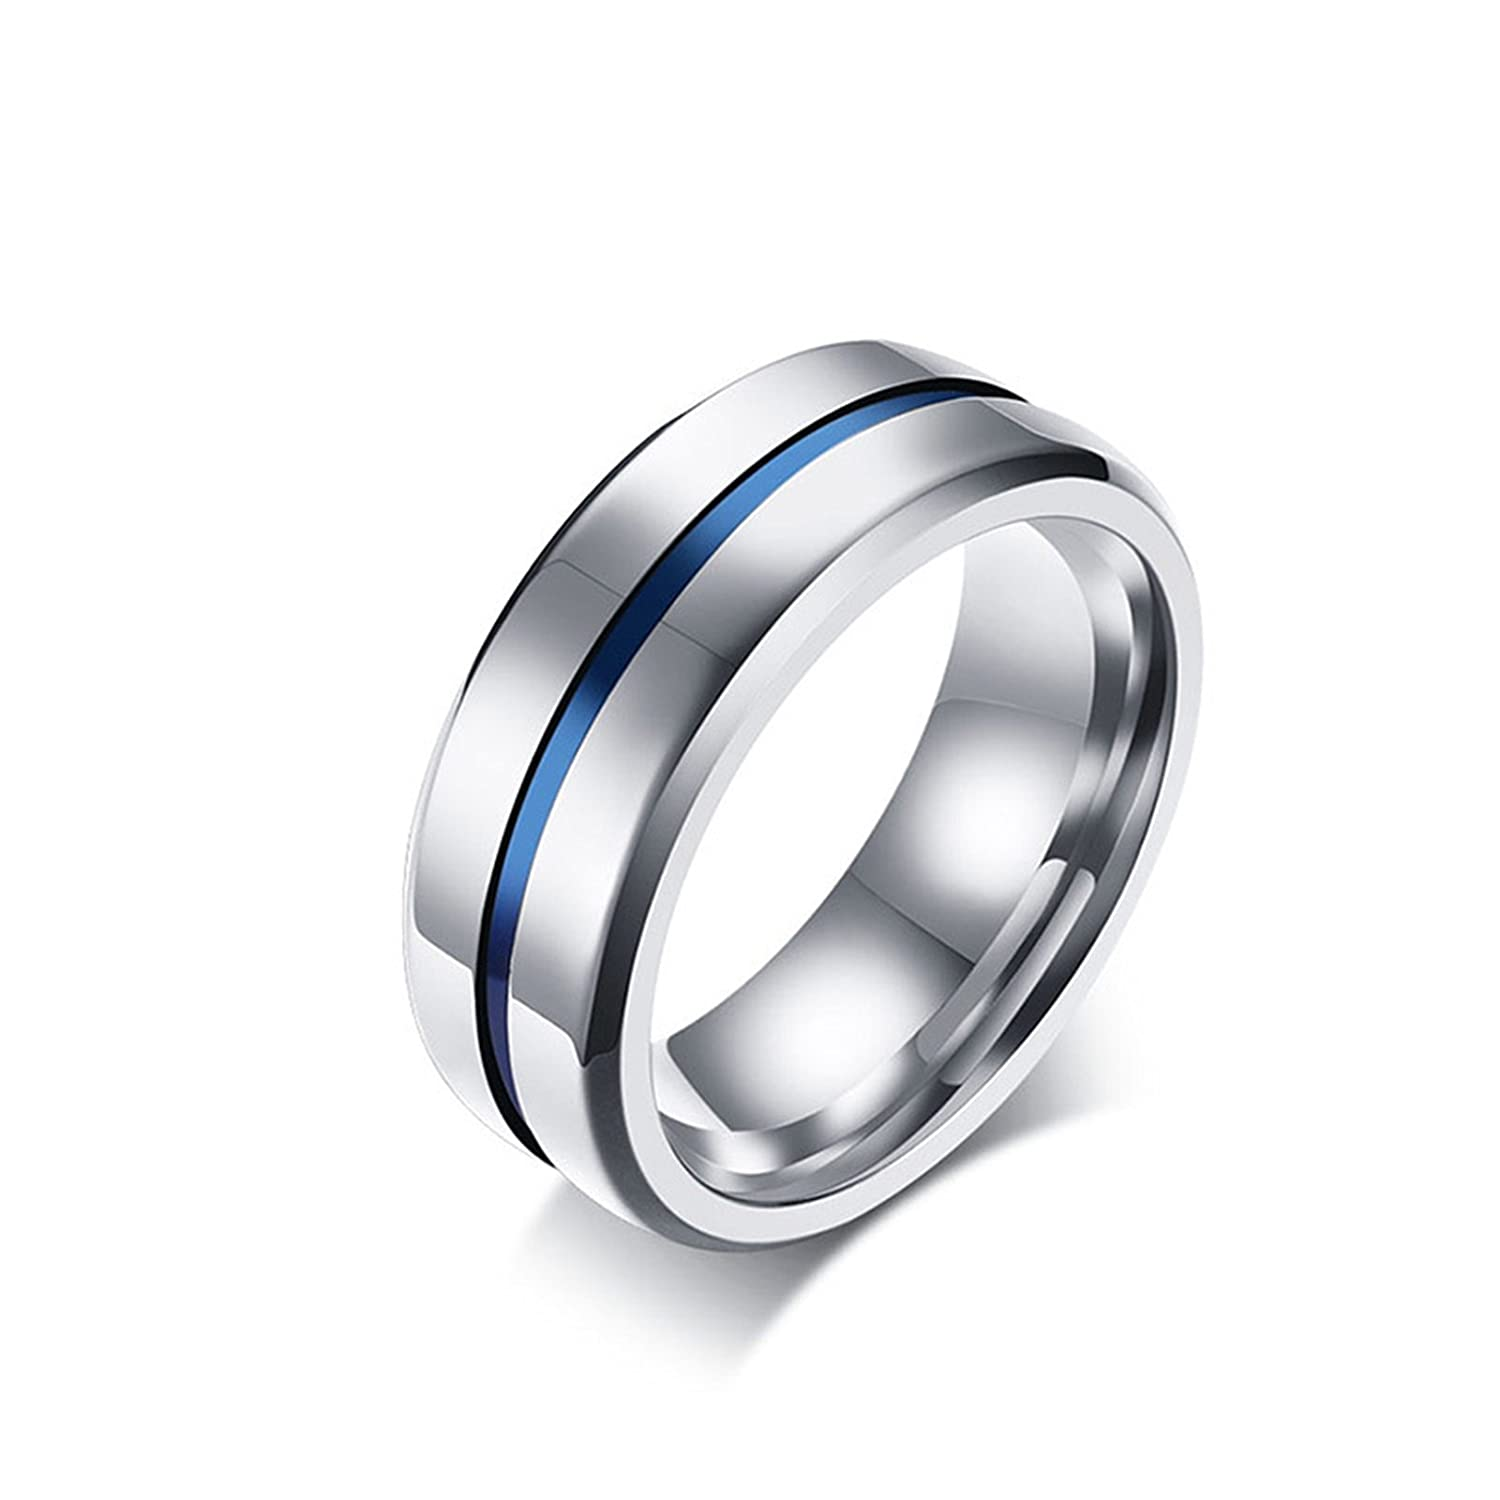 8MM Stainless Steel Thin Blue Line Groove Polished Finish Wedding Band Ring for Men Women Silver